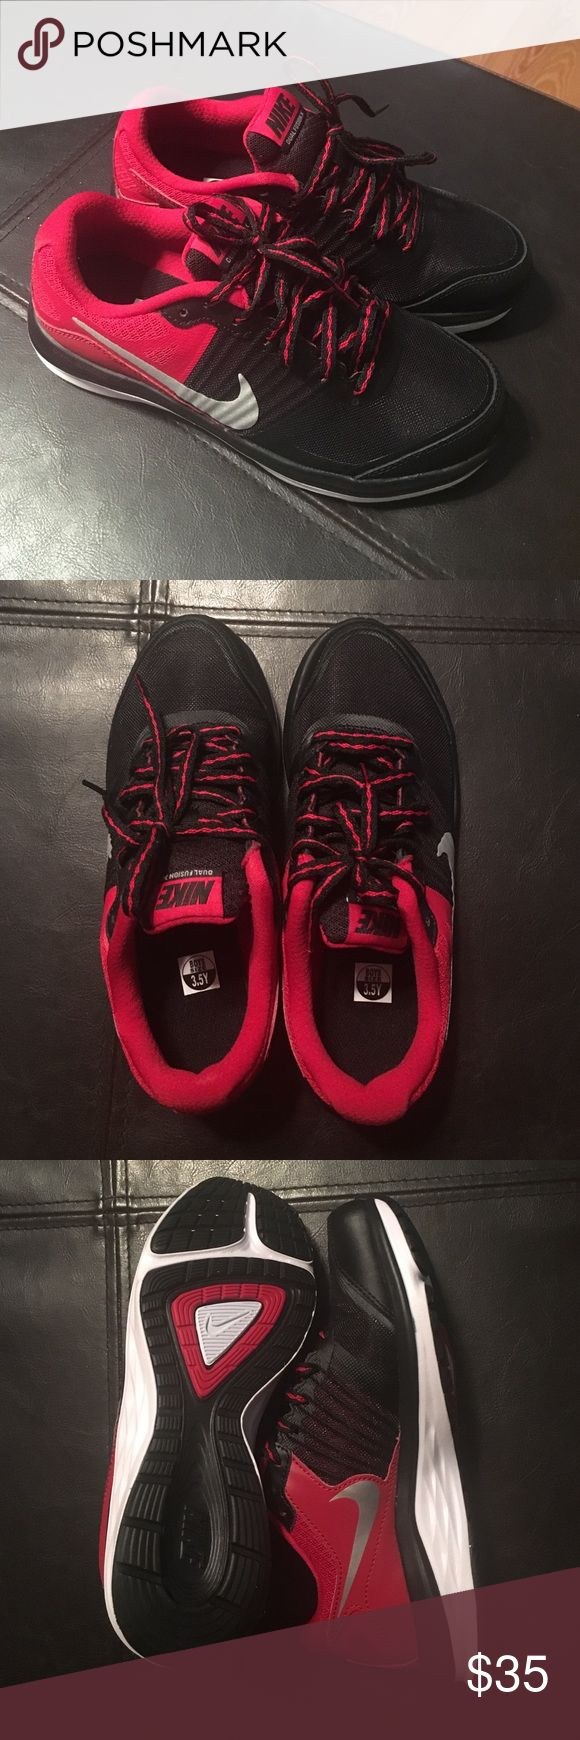 Youth Boys Nike Dual Fusion X shoes Youth Boys Red, Black & silver Nike tennis shoes.. brand new in perfect condition. Nike Shoes Sneakers